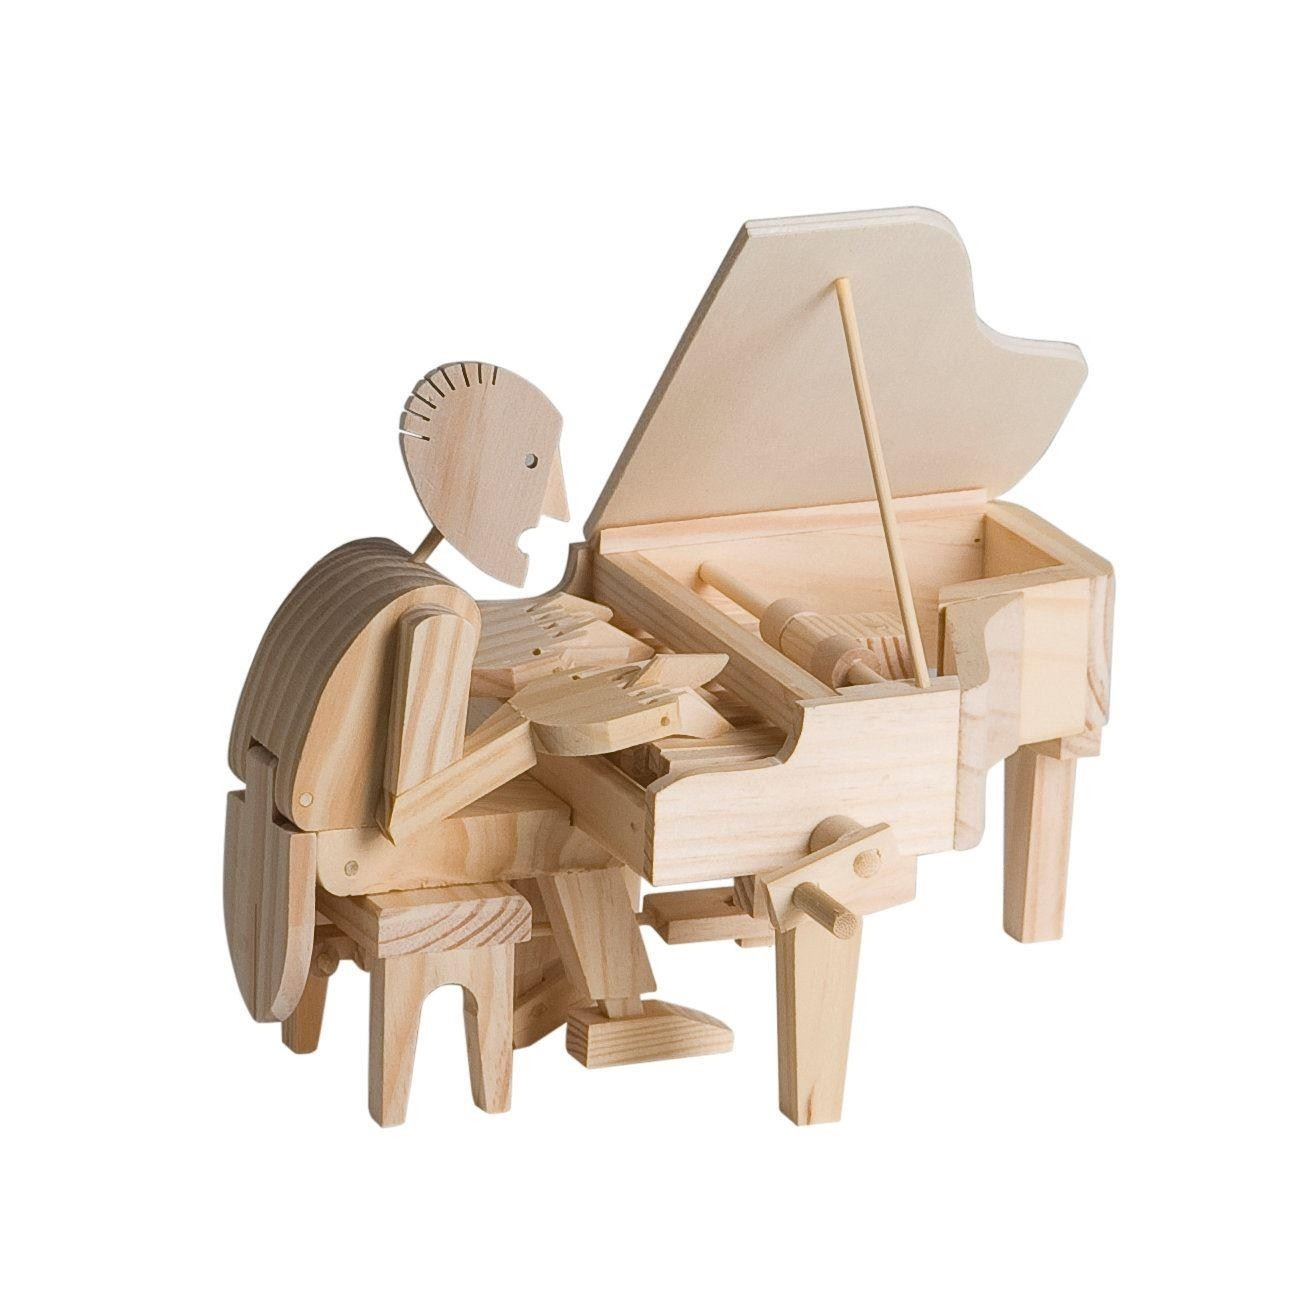 Timberkits Pianist Kit wooden model flatpack kit